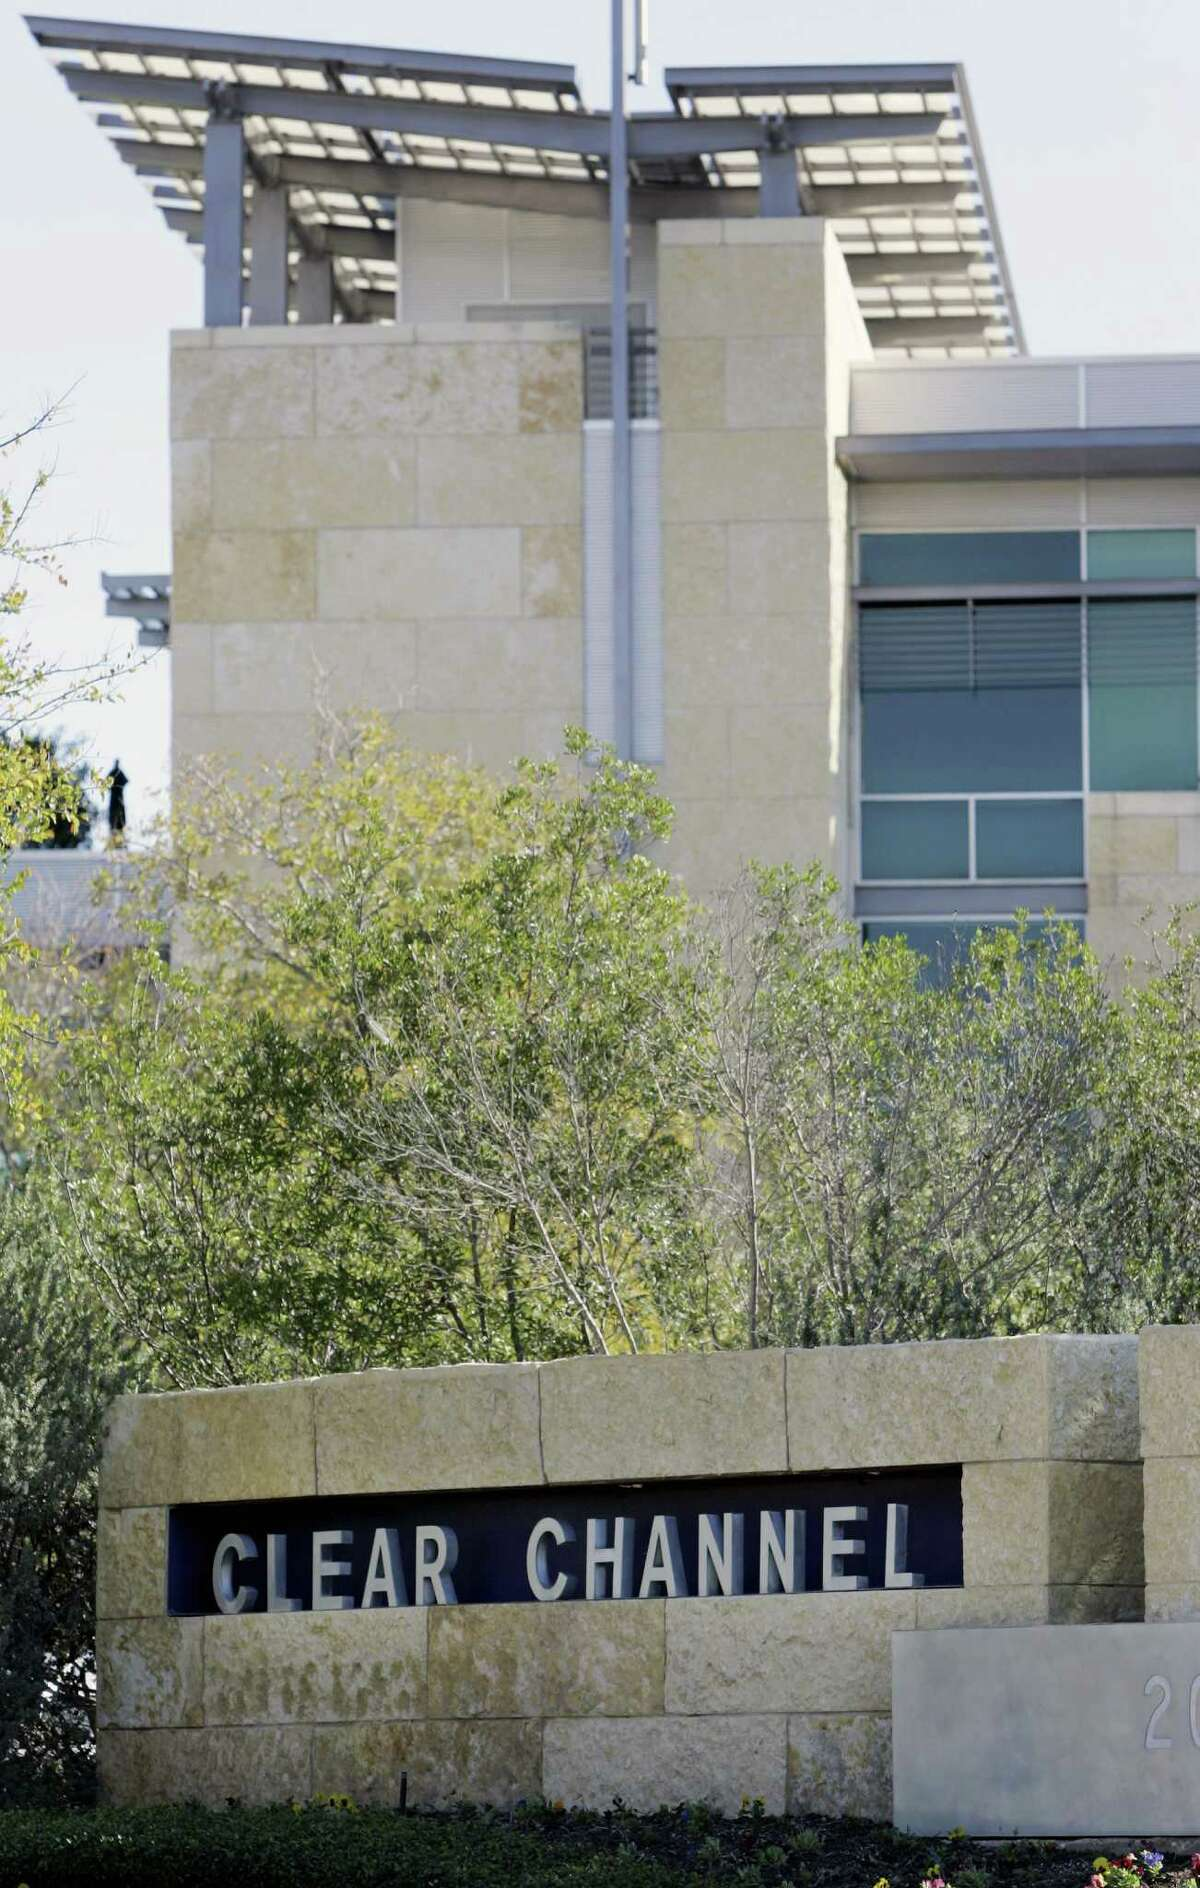 Clear Channel Communications may be looking to refinance its debt before record low interest rates reverse.